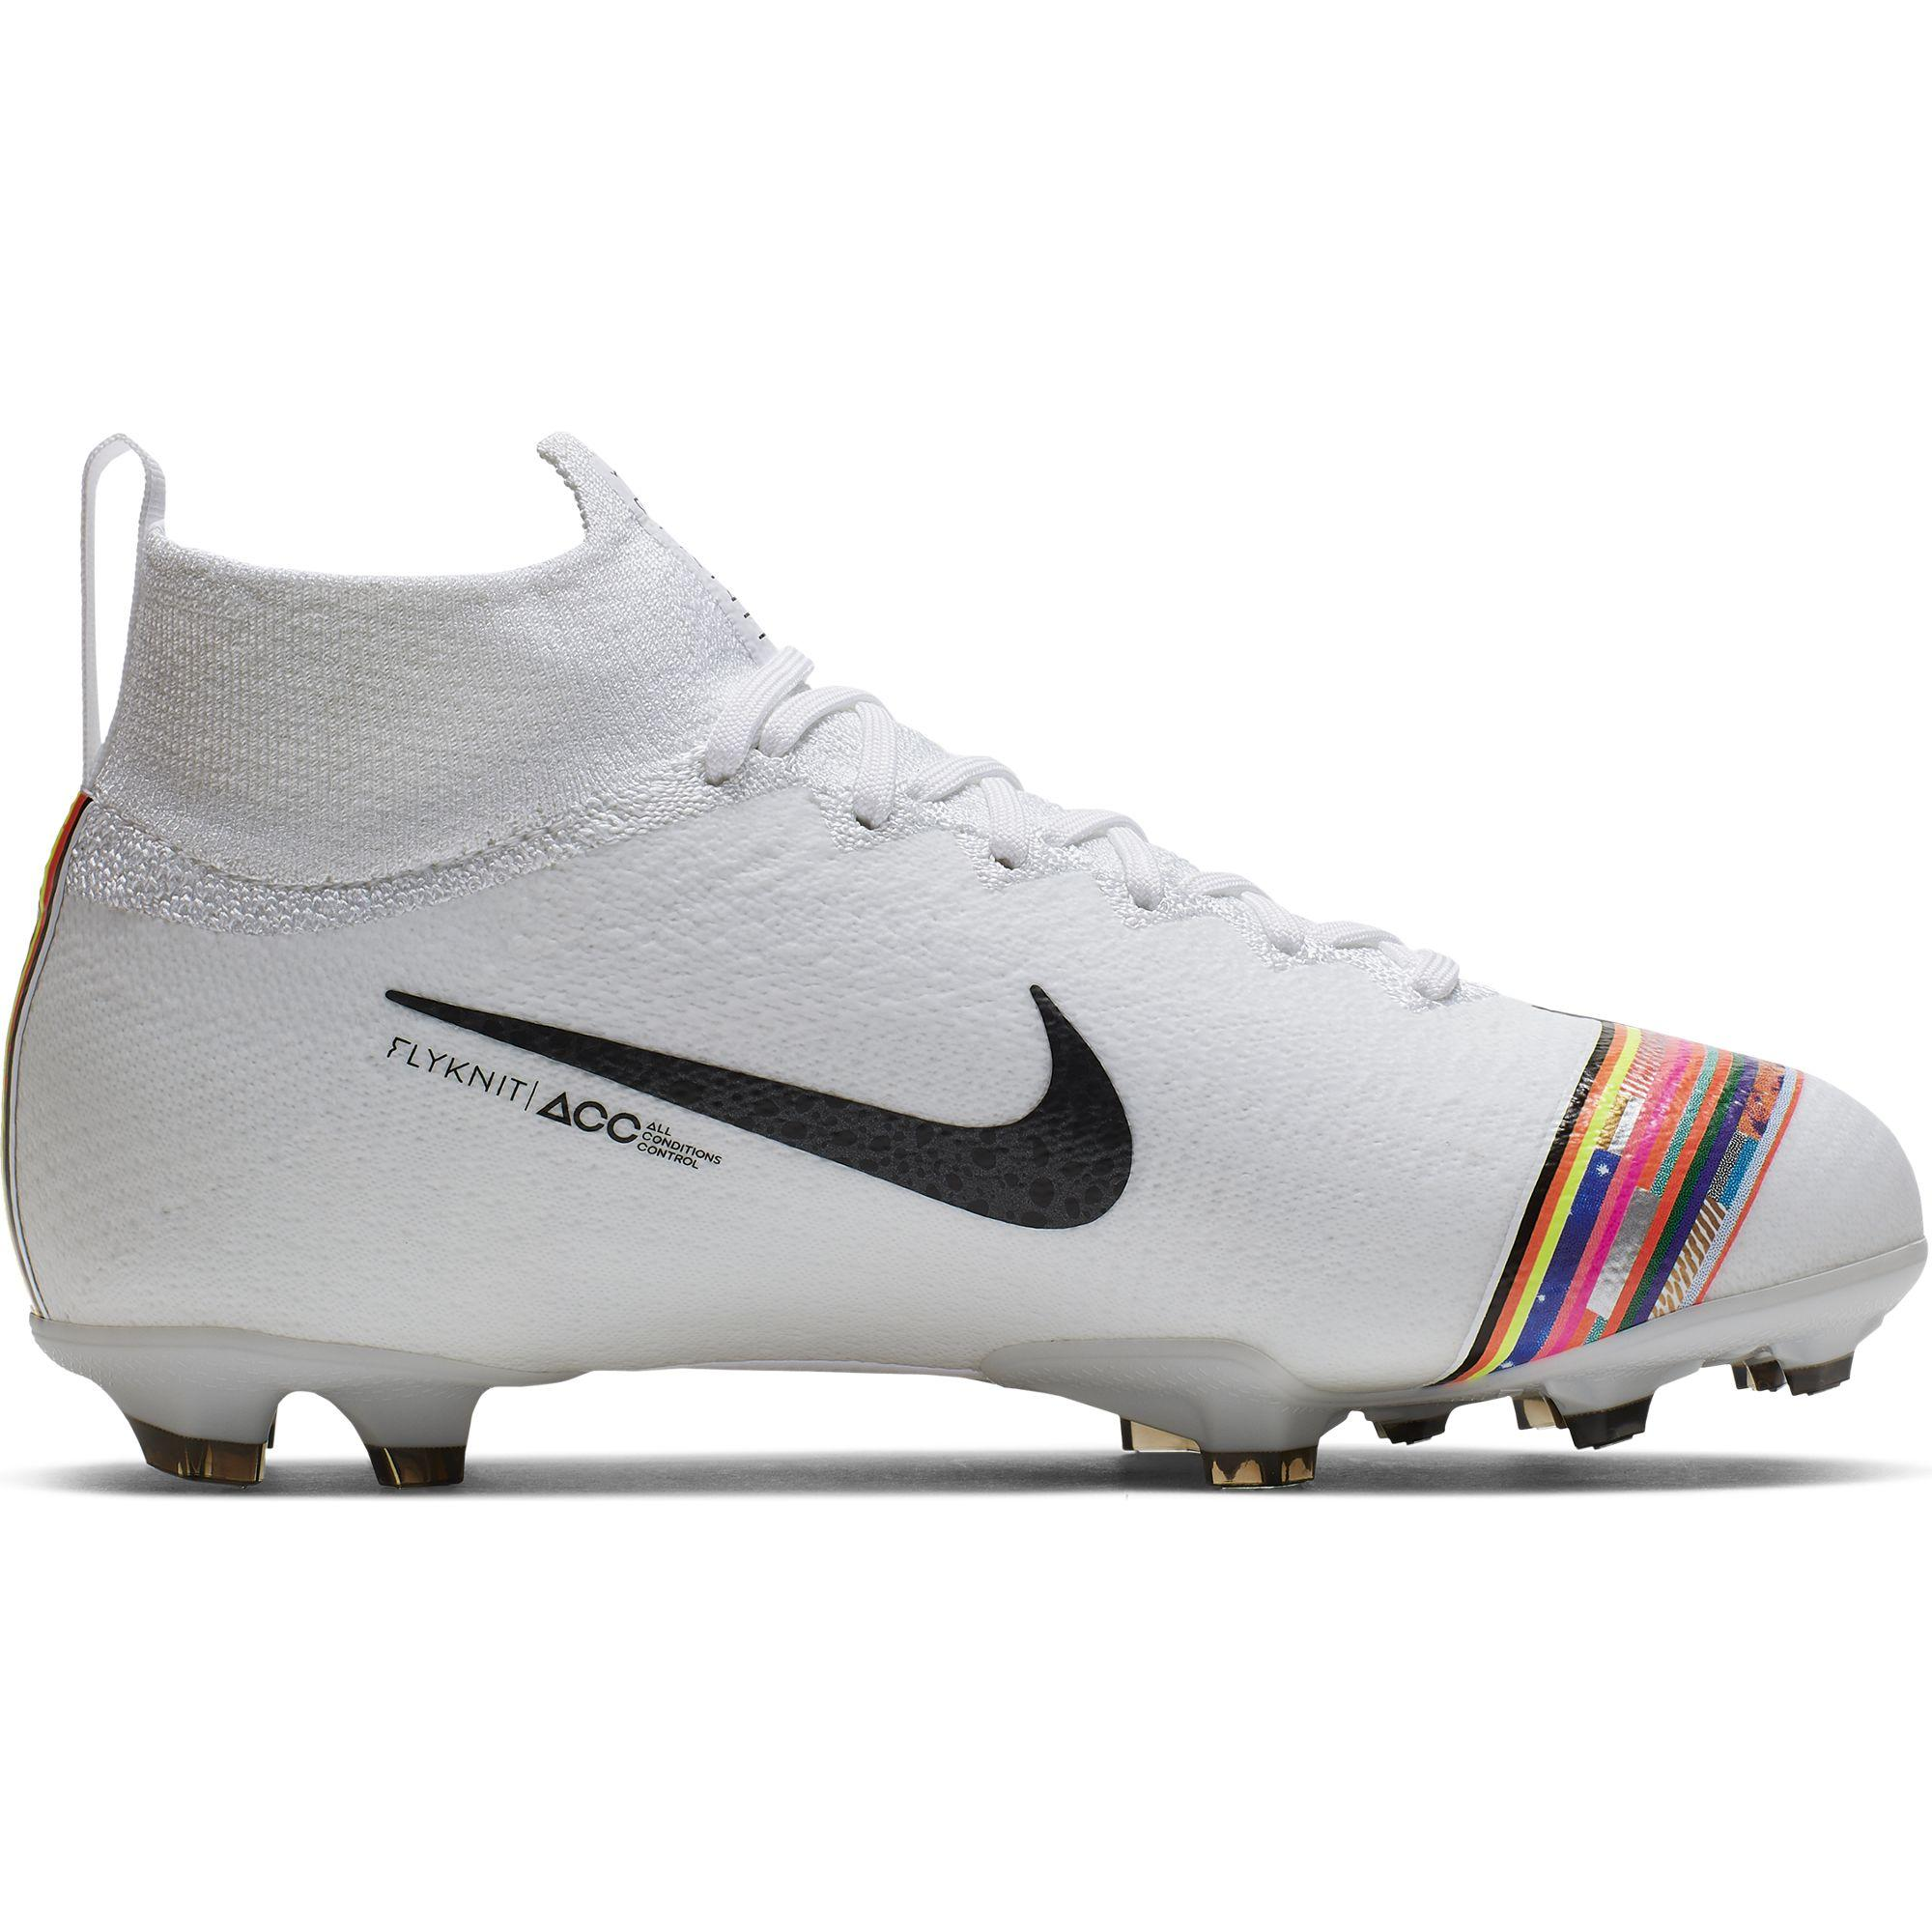 super specials buy sale outlet Nike Football Shoes Superfly 6 Elite CR7 FG Junior Cristiano Ronaldo